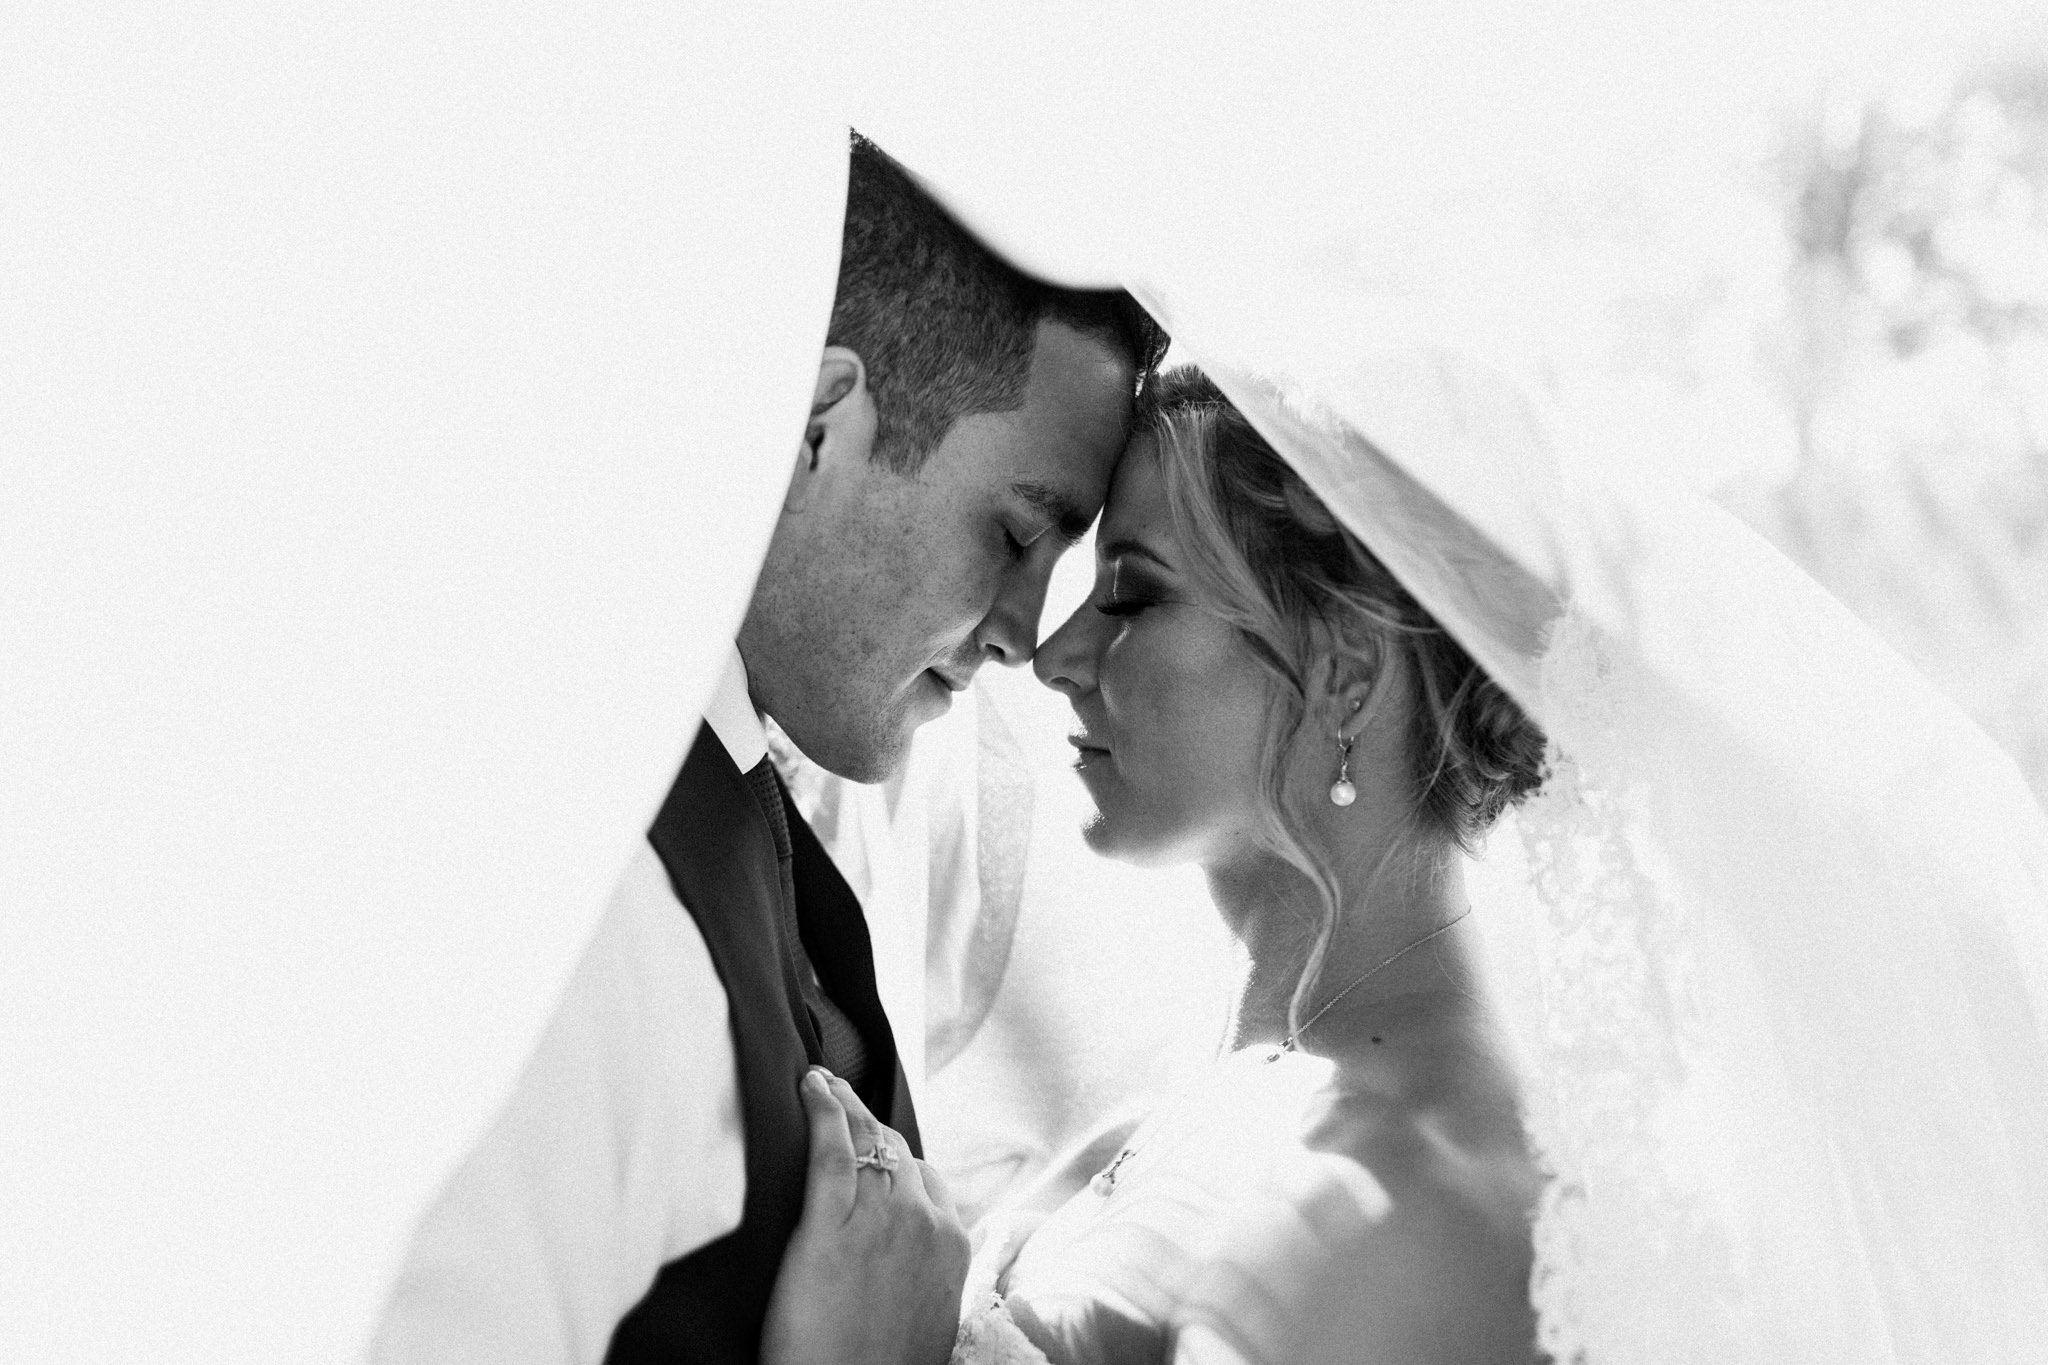 bridal veil framing a bride and groom in an intimate moment